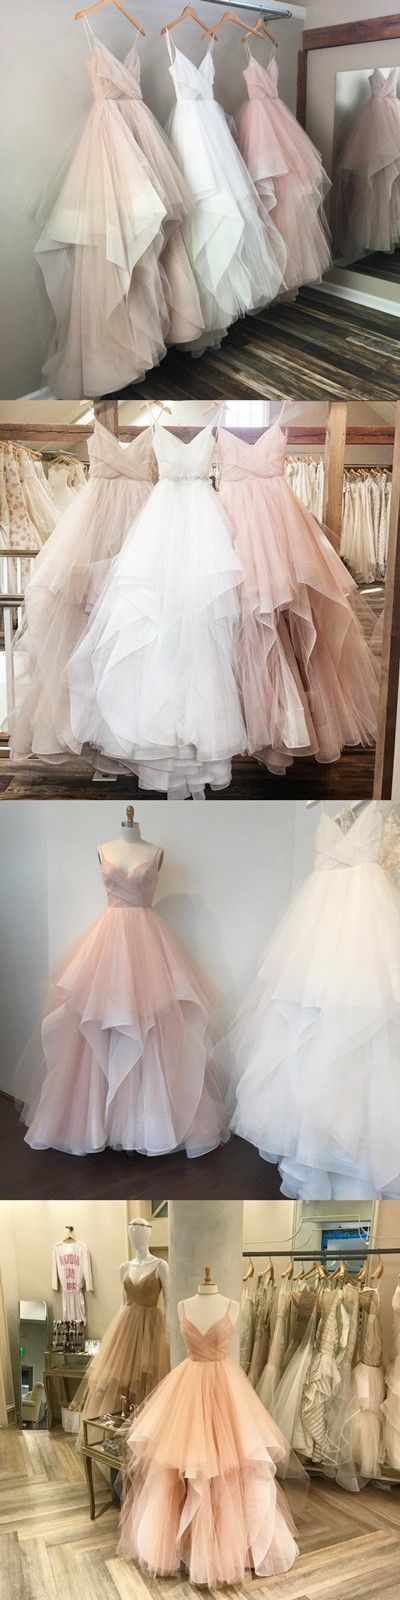 Prom Dresses,prom gown,tulle long prom dress,lace evening dress light pink evening dresses for teens